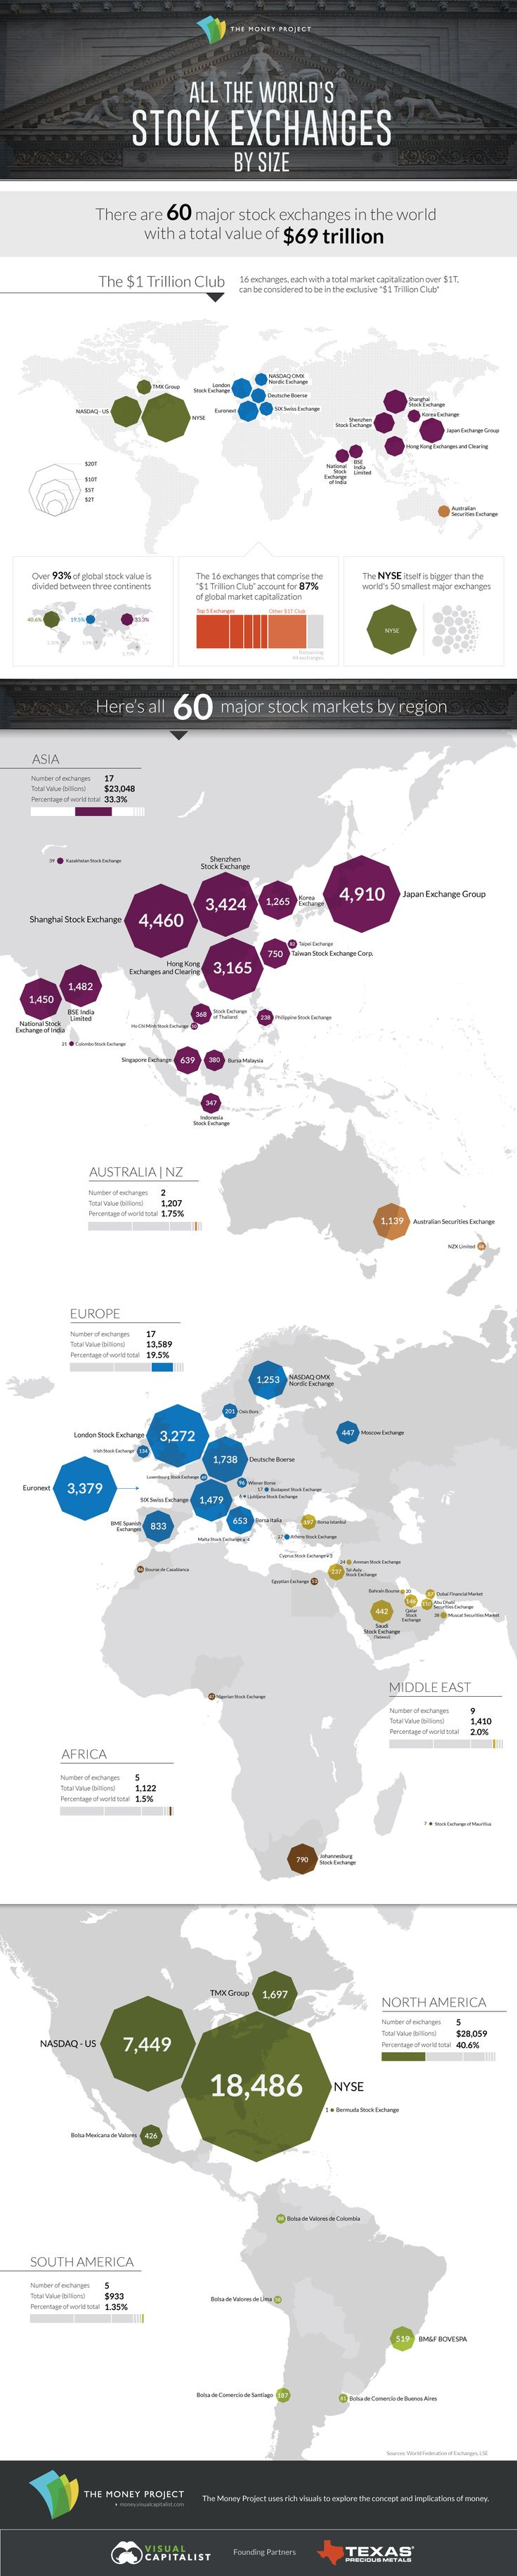 All of the World's Stock Exchanges by Size